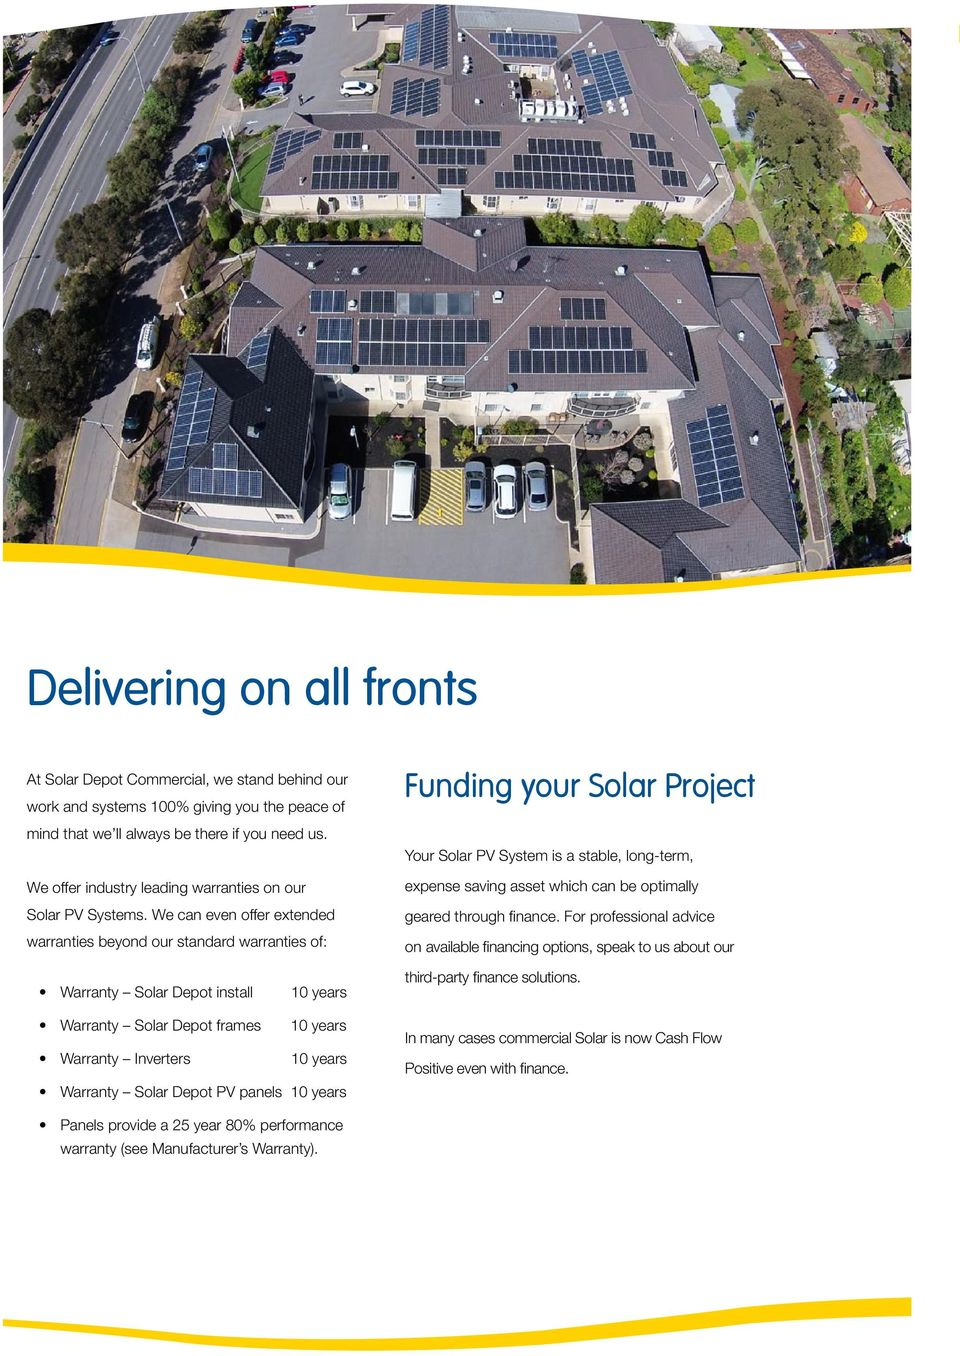 We can even offer extended warranties beyond our standard warranties of: Funding your Solar Project Your Solar PV System is a stable, long-term, expense saving asset which can be optimally geared